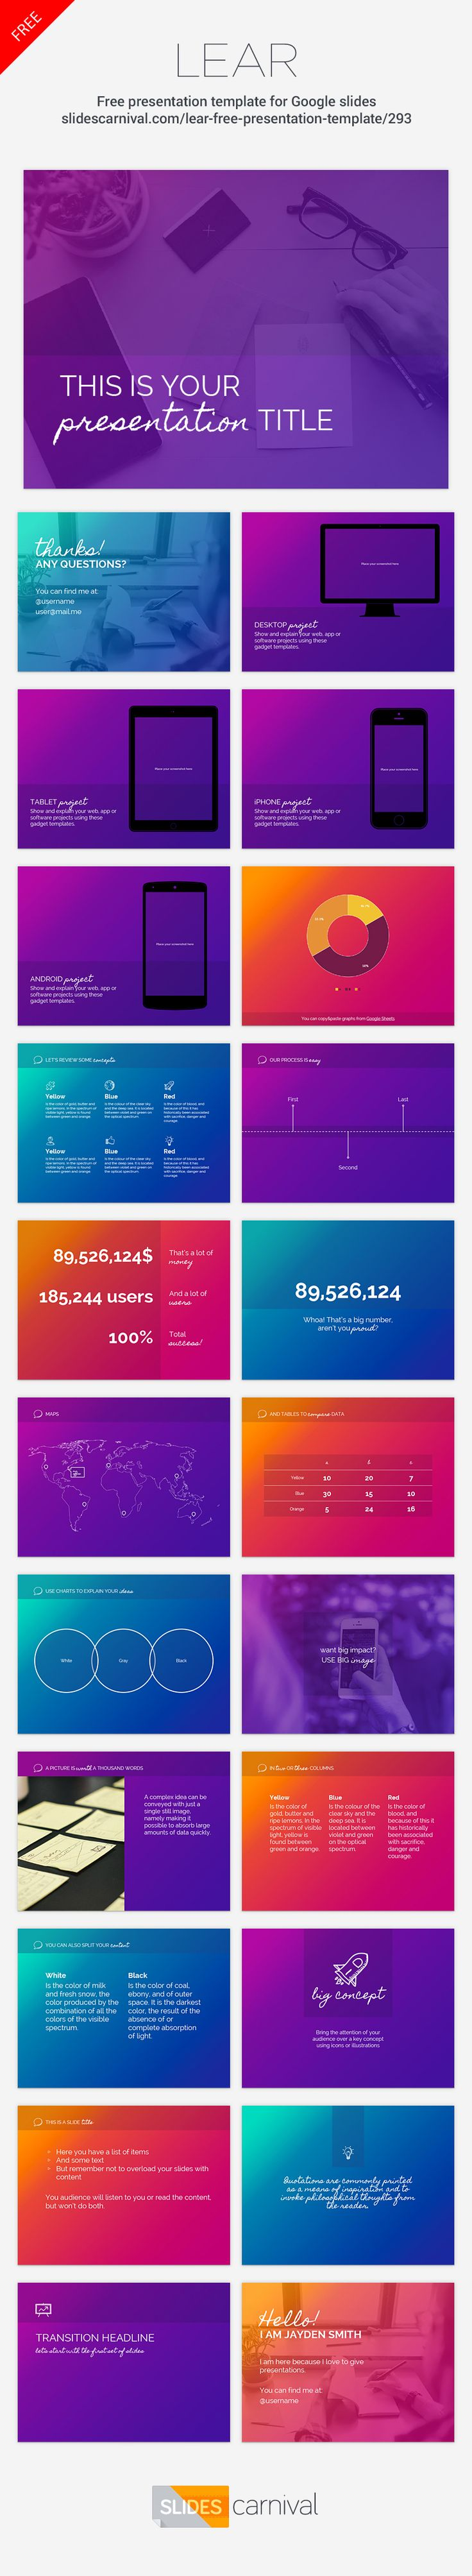 With a bold color palette and out of the box design this free template is perfect for non-corporate presentations. The slides backgrounds won't easily adapt to any brand, but on the other hand your audience will remember your speech for sure.  Use this template to talk about creativity, innovation or sports.